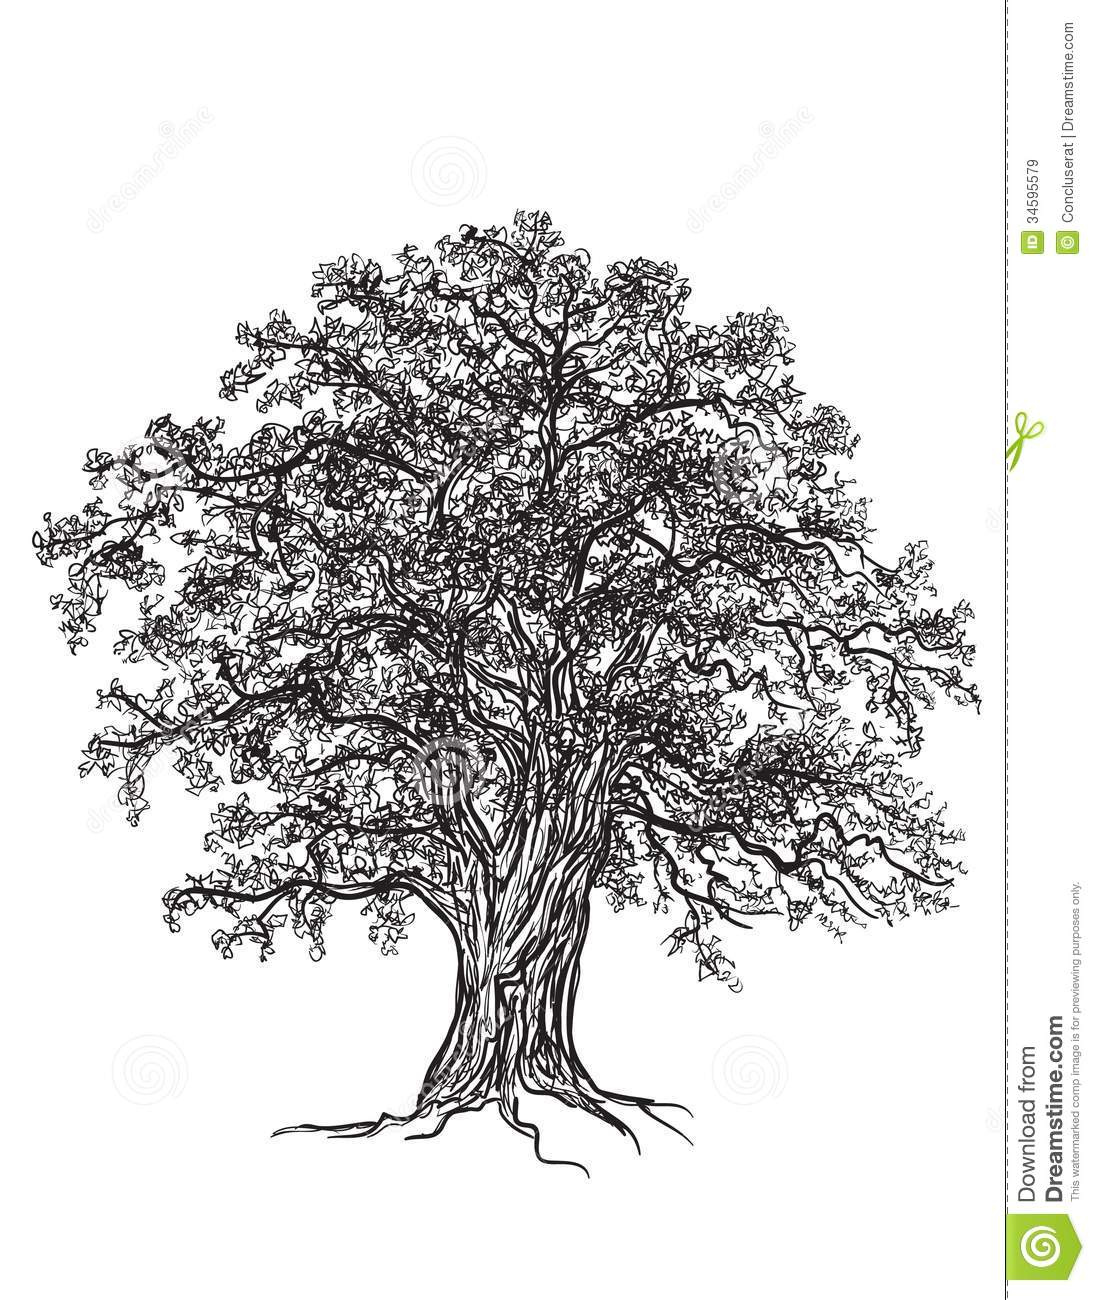 Black and white oak tree with leaves  Drawn with illustrators brushes    Oak Tree Clip Art Black And White